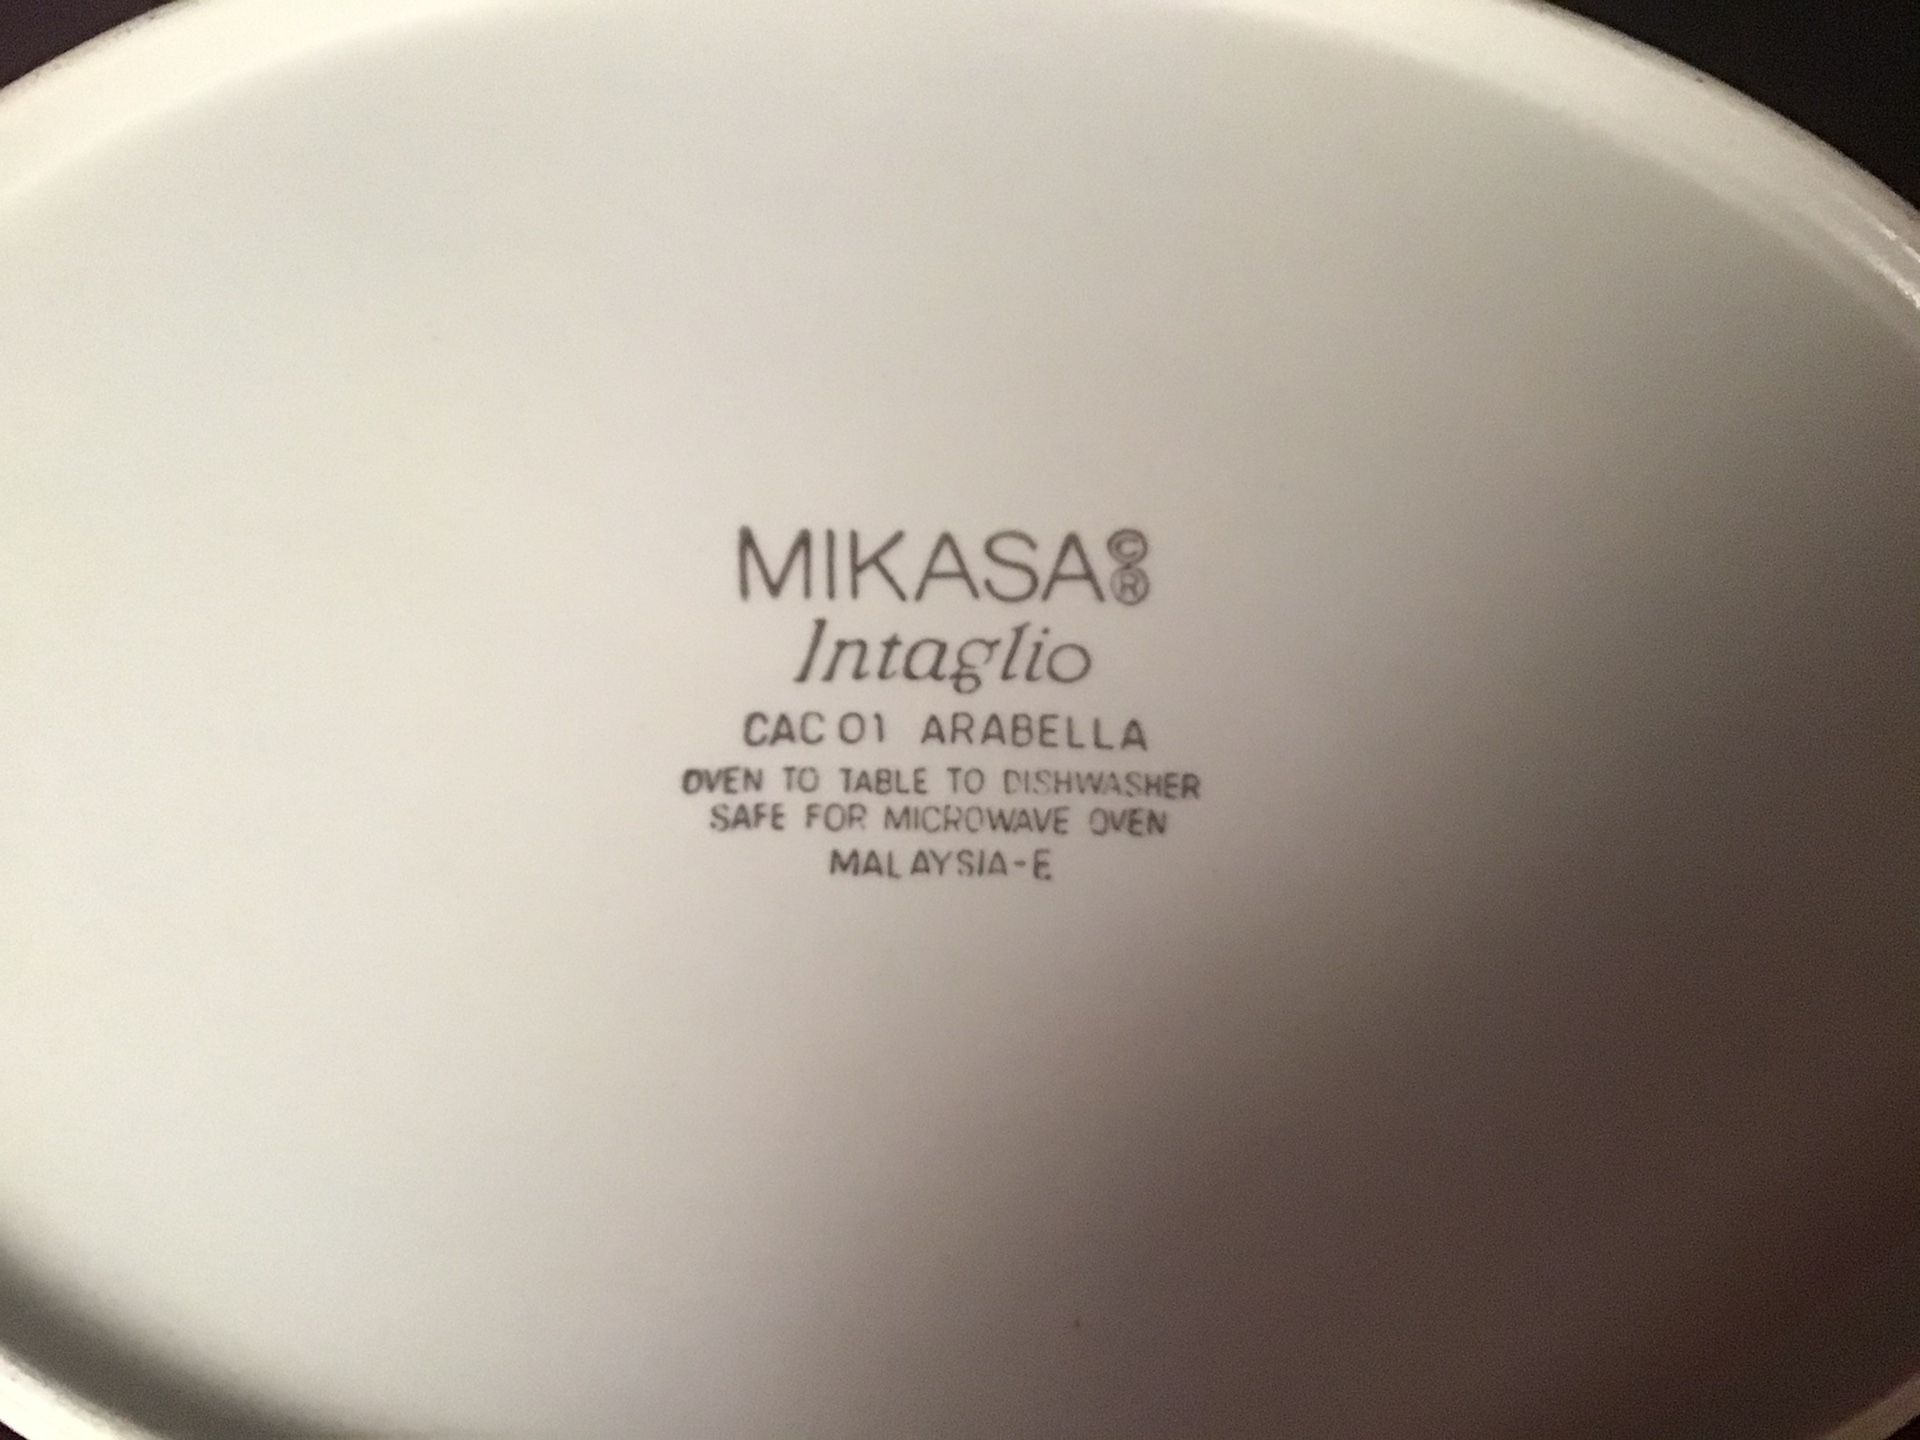 Mikasa Intaglio (5)Serving Pieces 1 med and 1 large serving bowl, 1 rectangle,1- 2 pc oval covered casserole ceramic bakeware set.